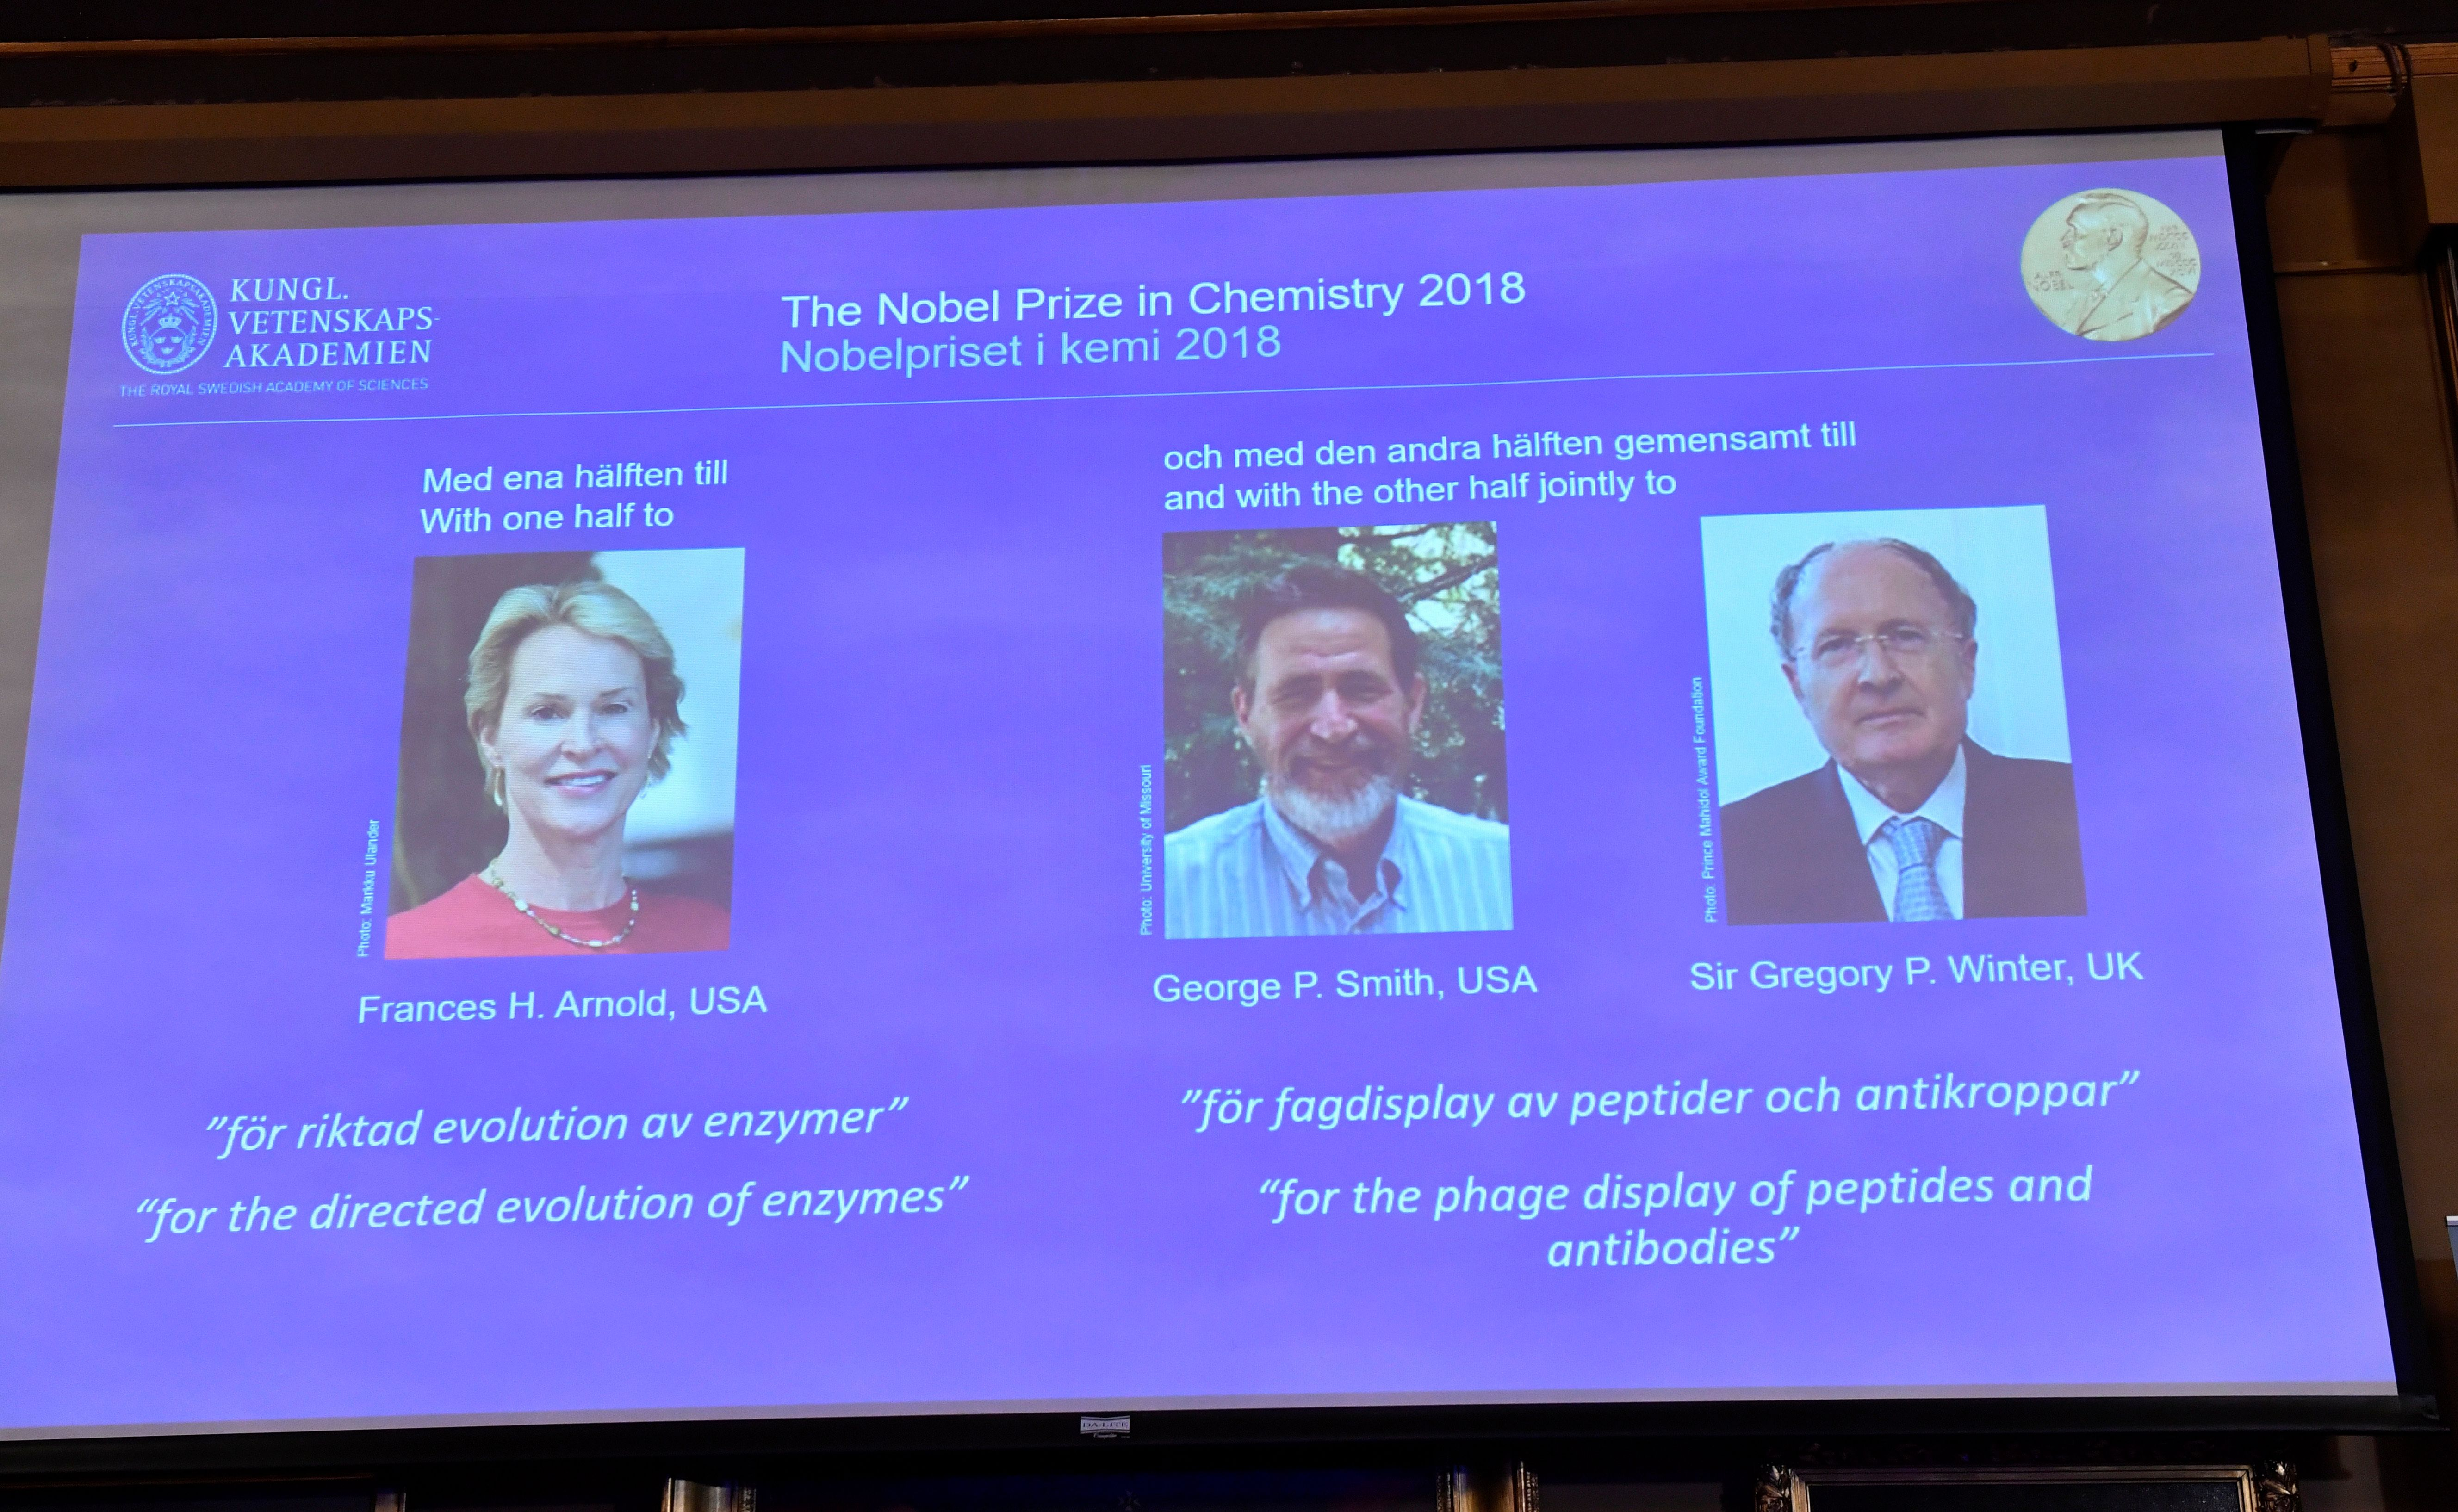 The 2018 Nobel Prize laureates for chemistry are shown on the screen from left, Frances H. Arnold of the U.S., George P. Smit